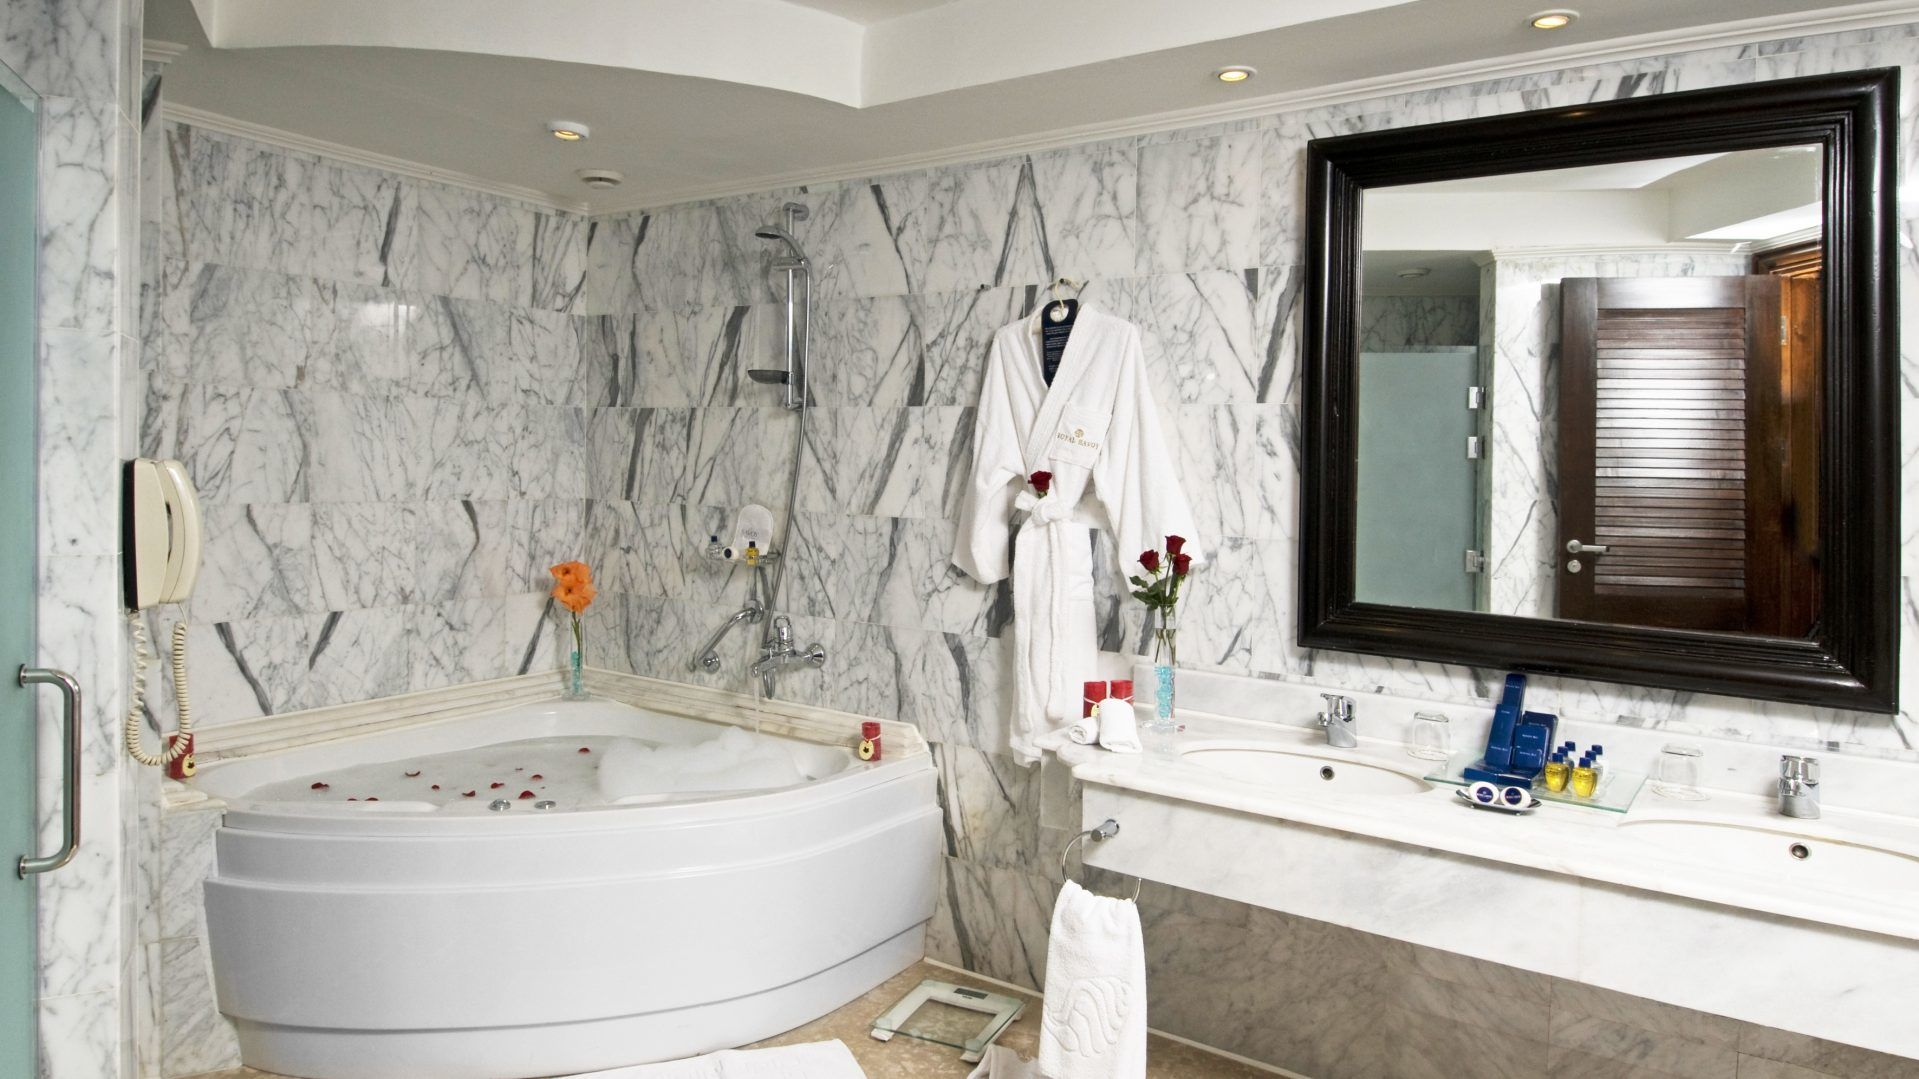 A Bedroom With A White Tub Sitting Next To A Sink